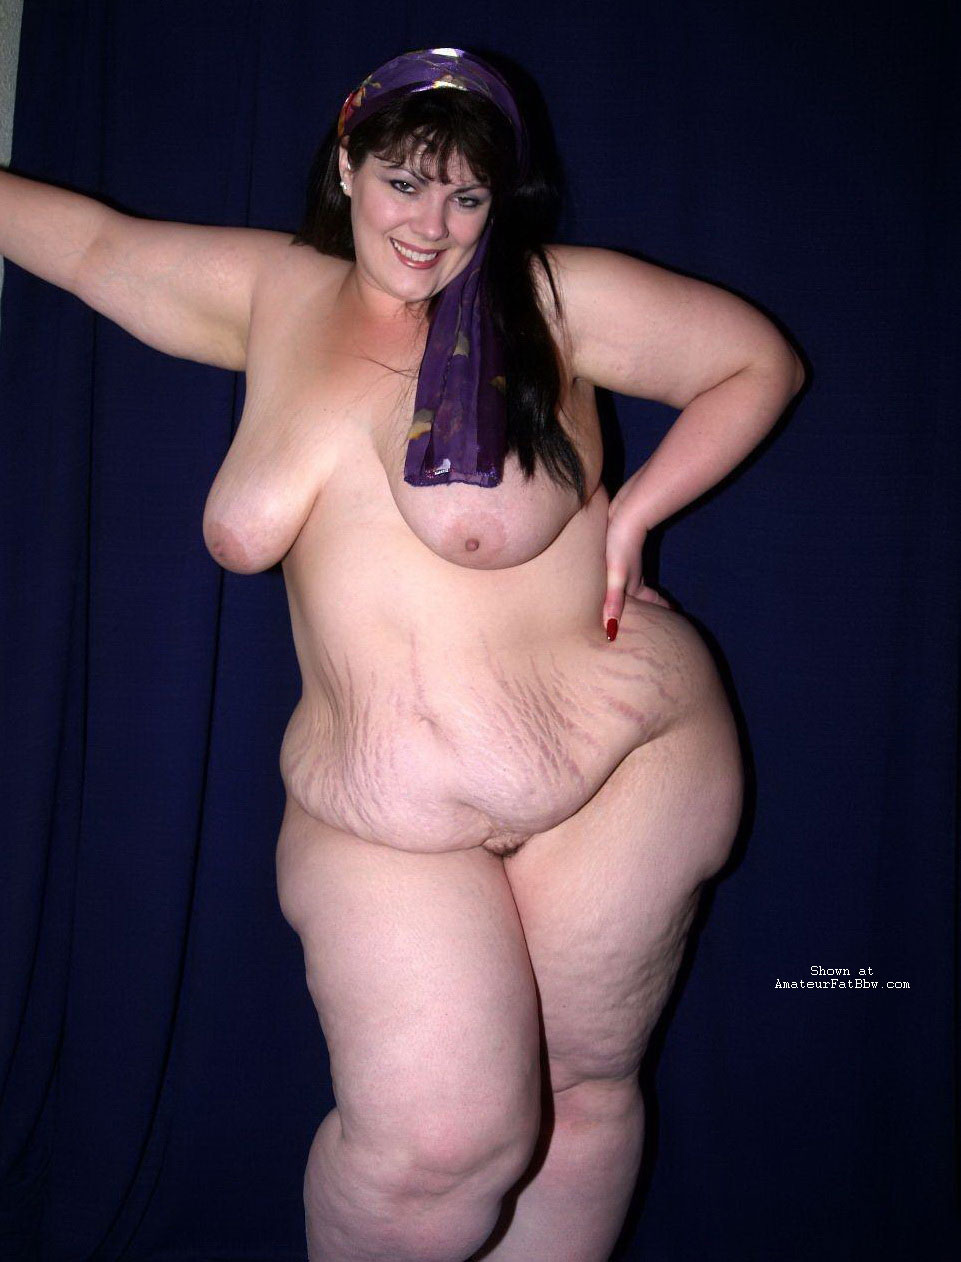 Photos of fat girls